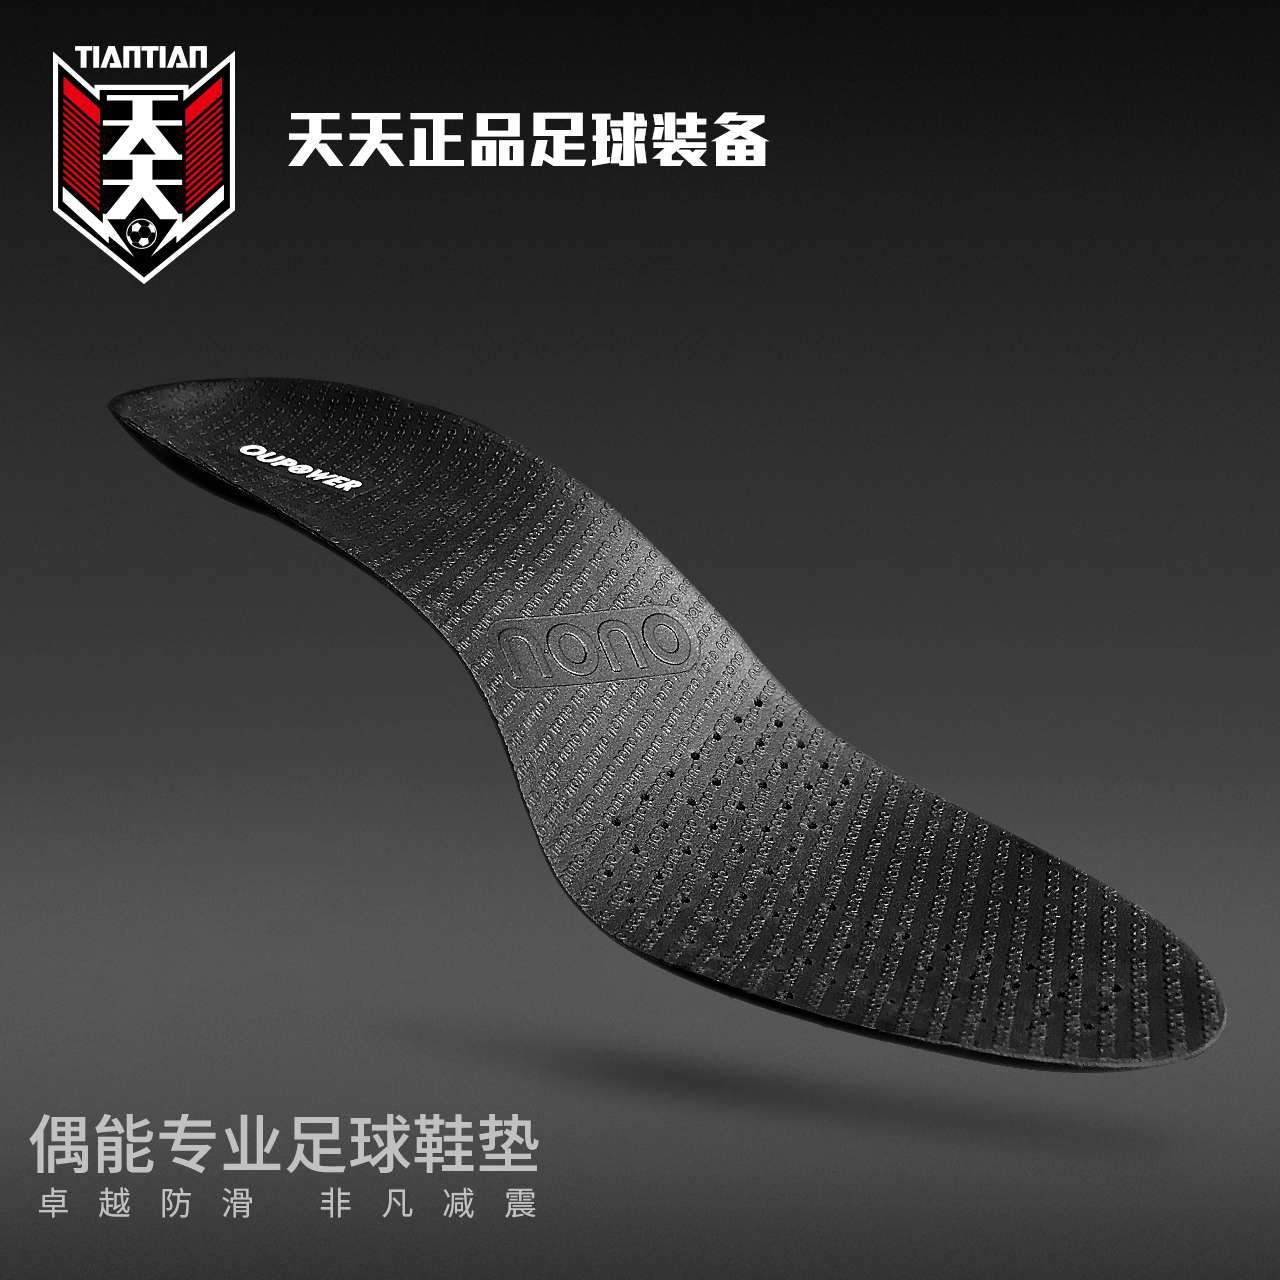 Every day OUPOWER occasional PORON shock-absorbing football insole anti-slip anti-odor sneaker insole